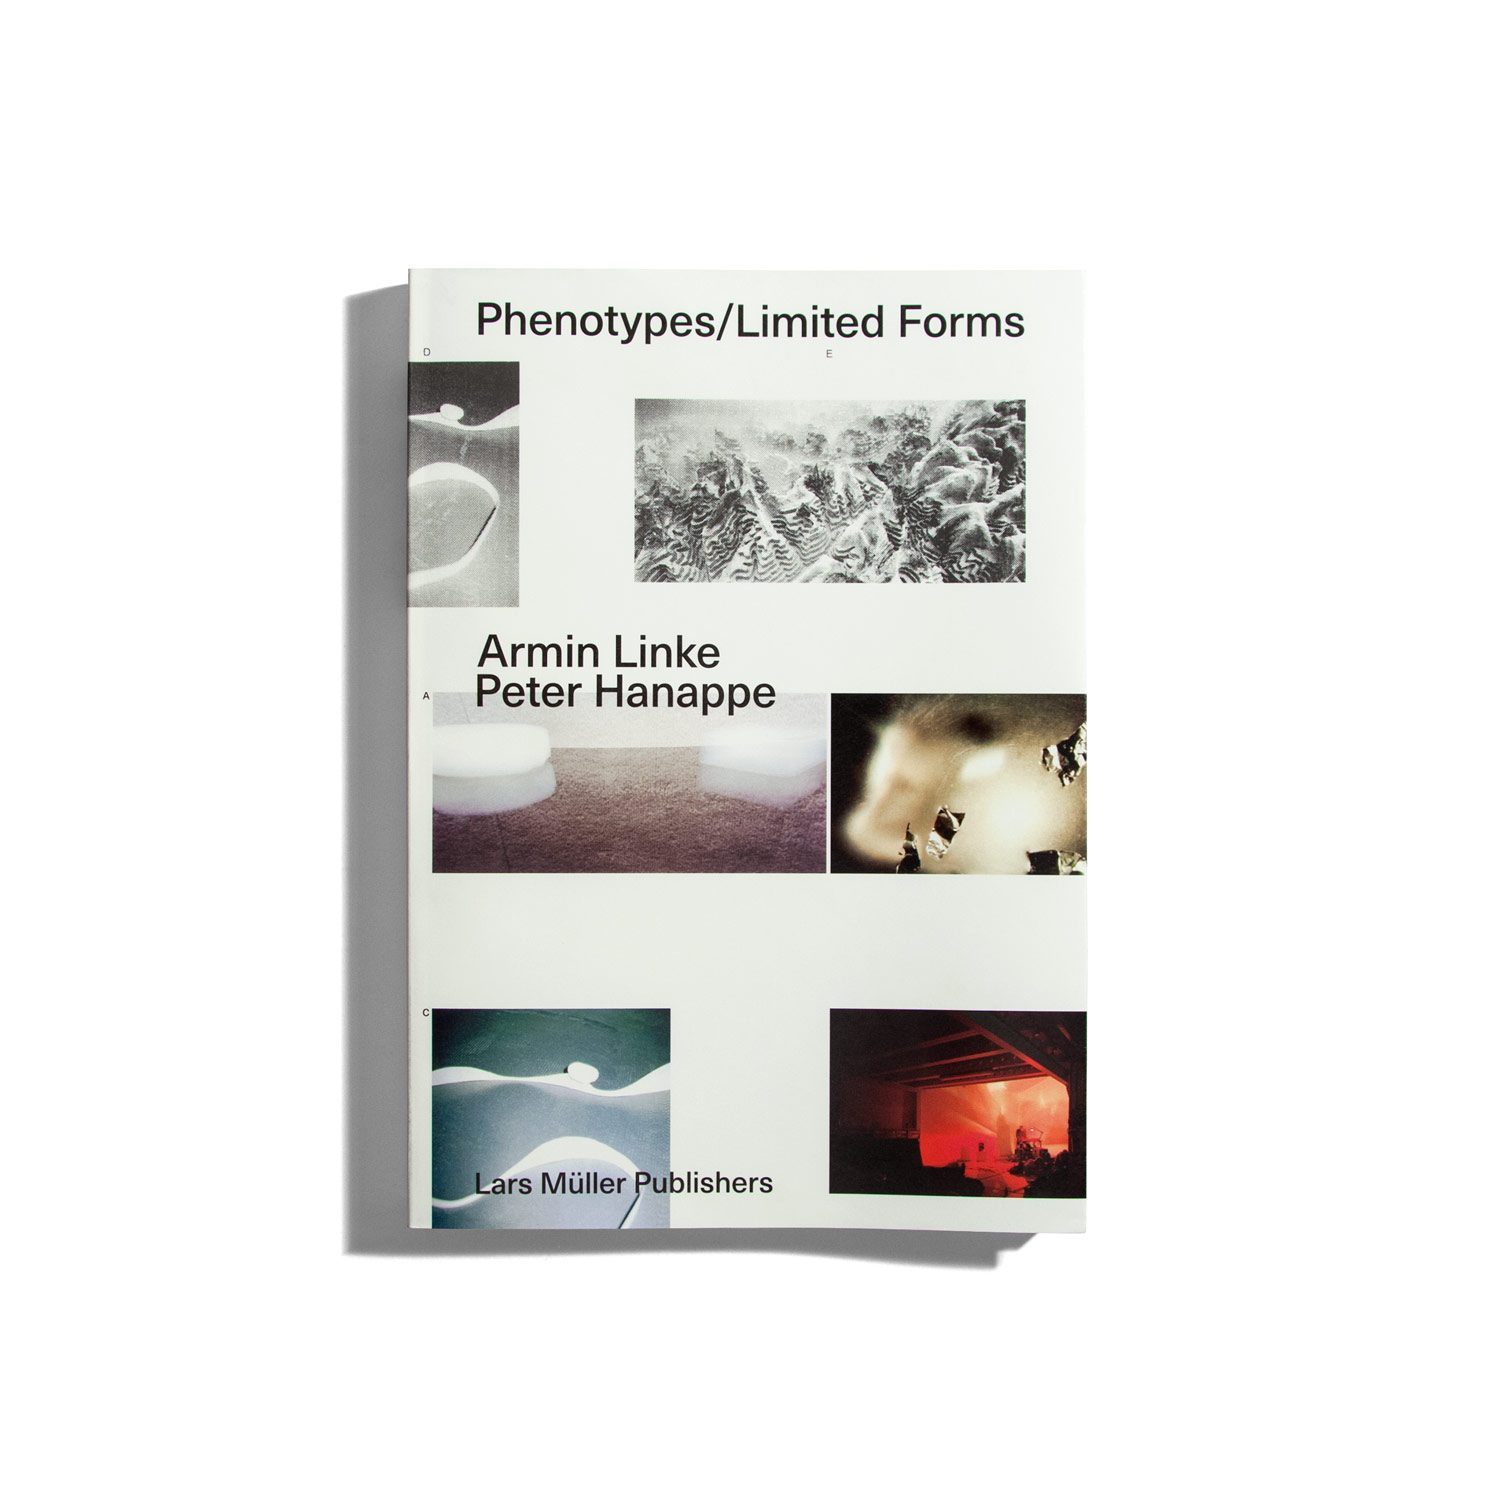 Phenotypes/Limited Forms